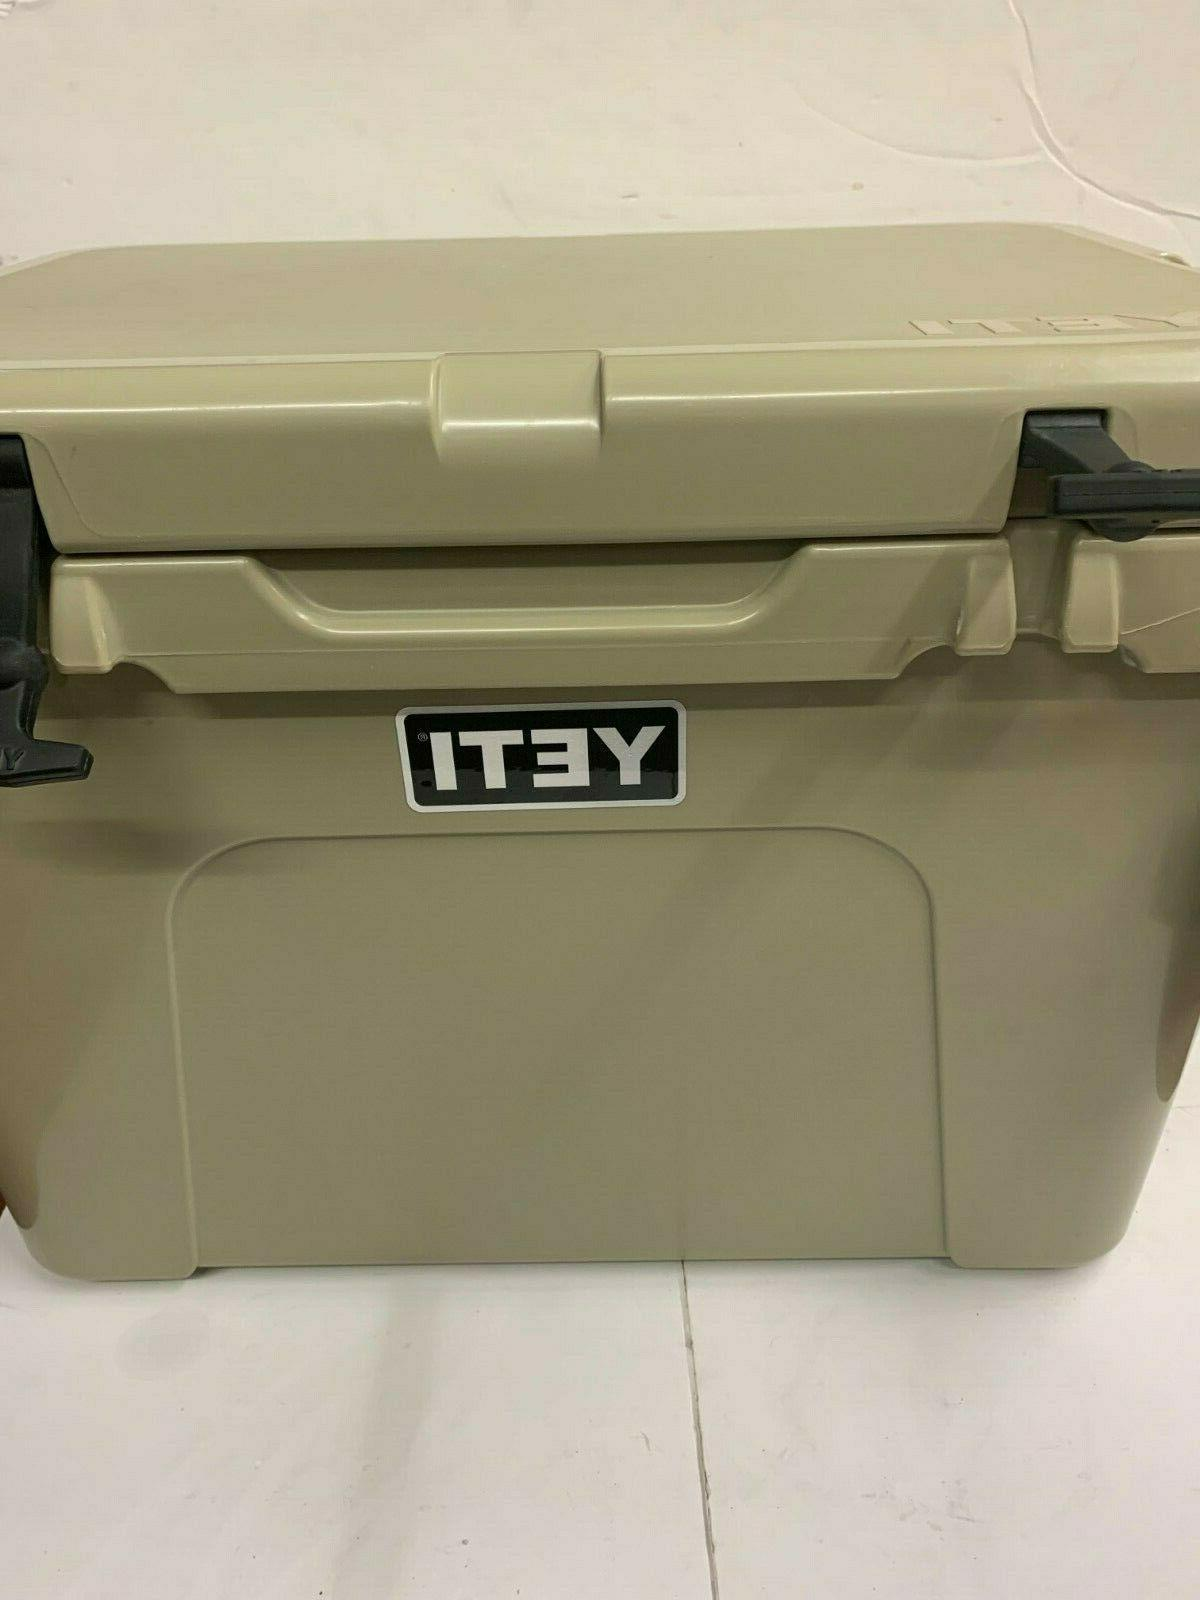 yt65t tundra 65 coolers